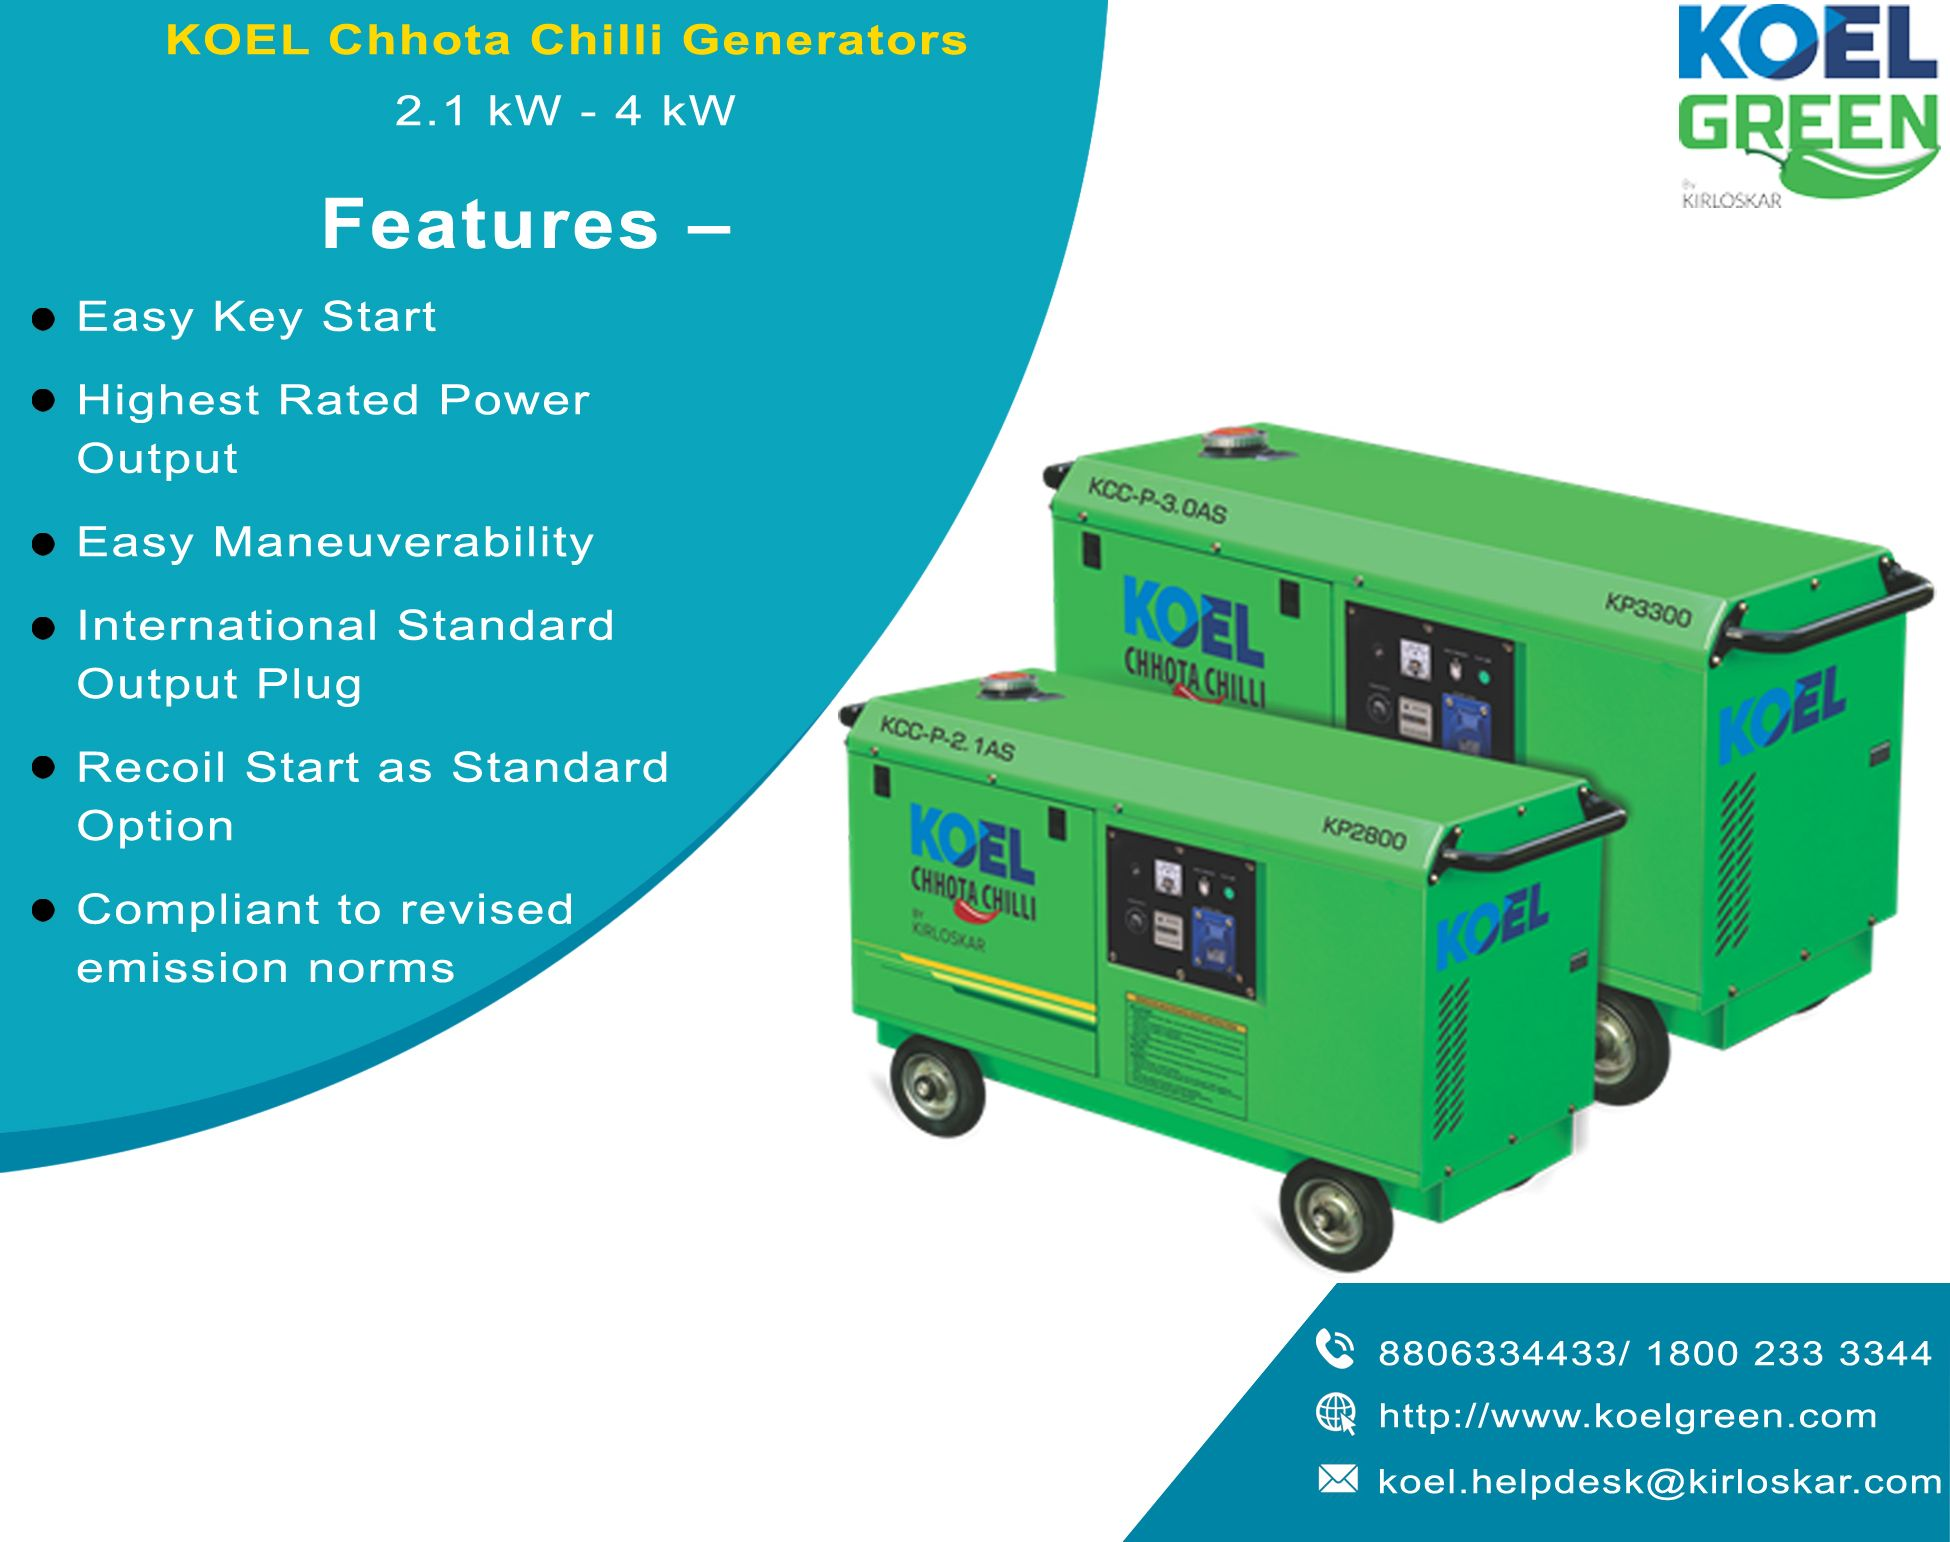 Ideal Electric Generator Manufacturer Excellent Electrical Wiring Simpleelectricgeneratordiagram Pin Simple Electricity By Koel Green On Best Quality Portable Petrol Rh Pinterest Com Power Plant Science